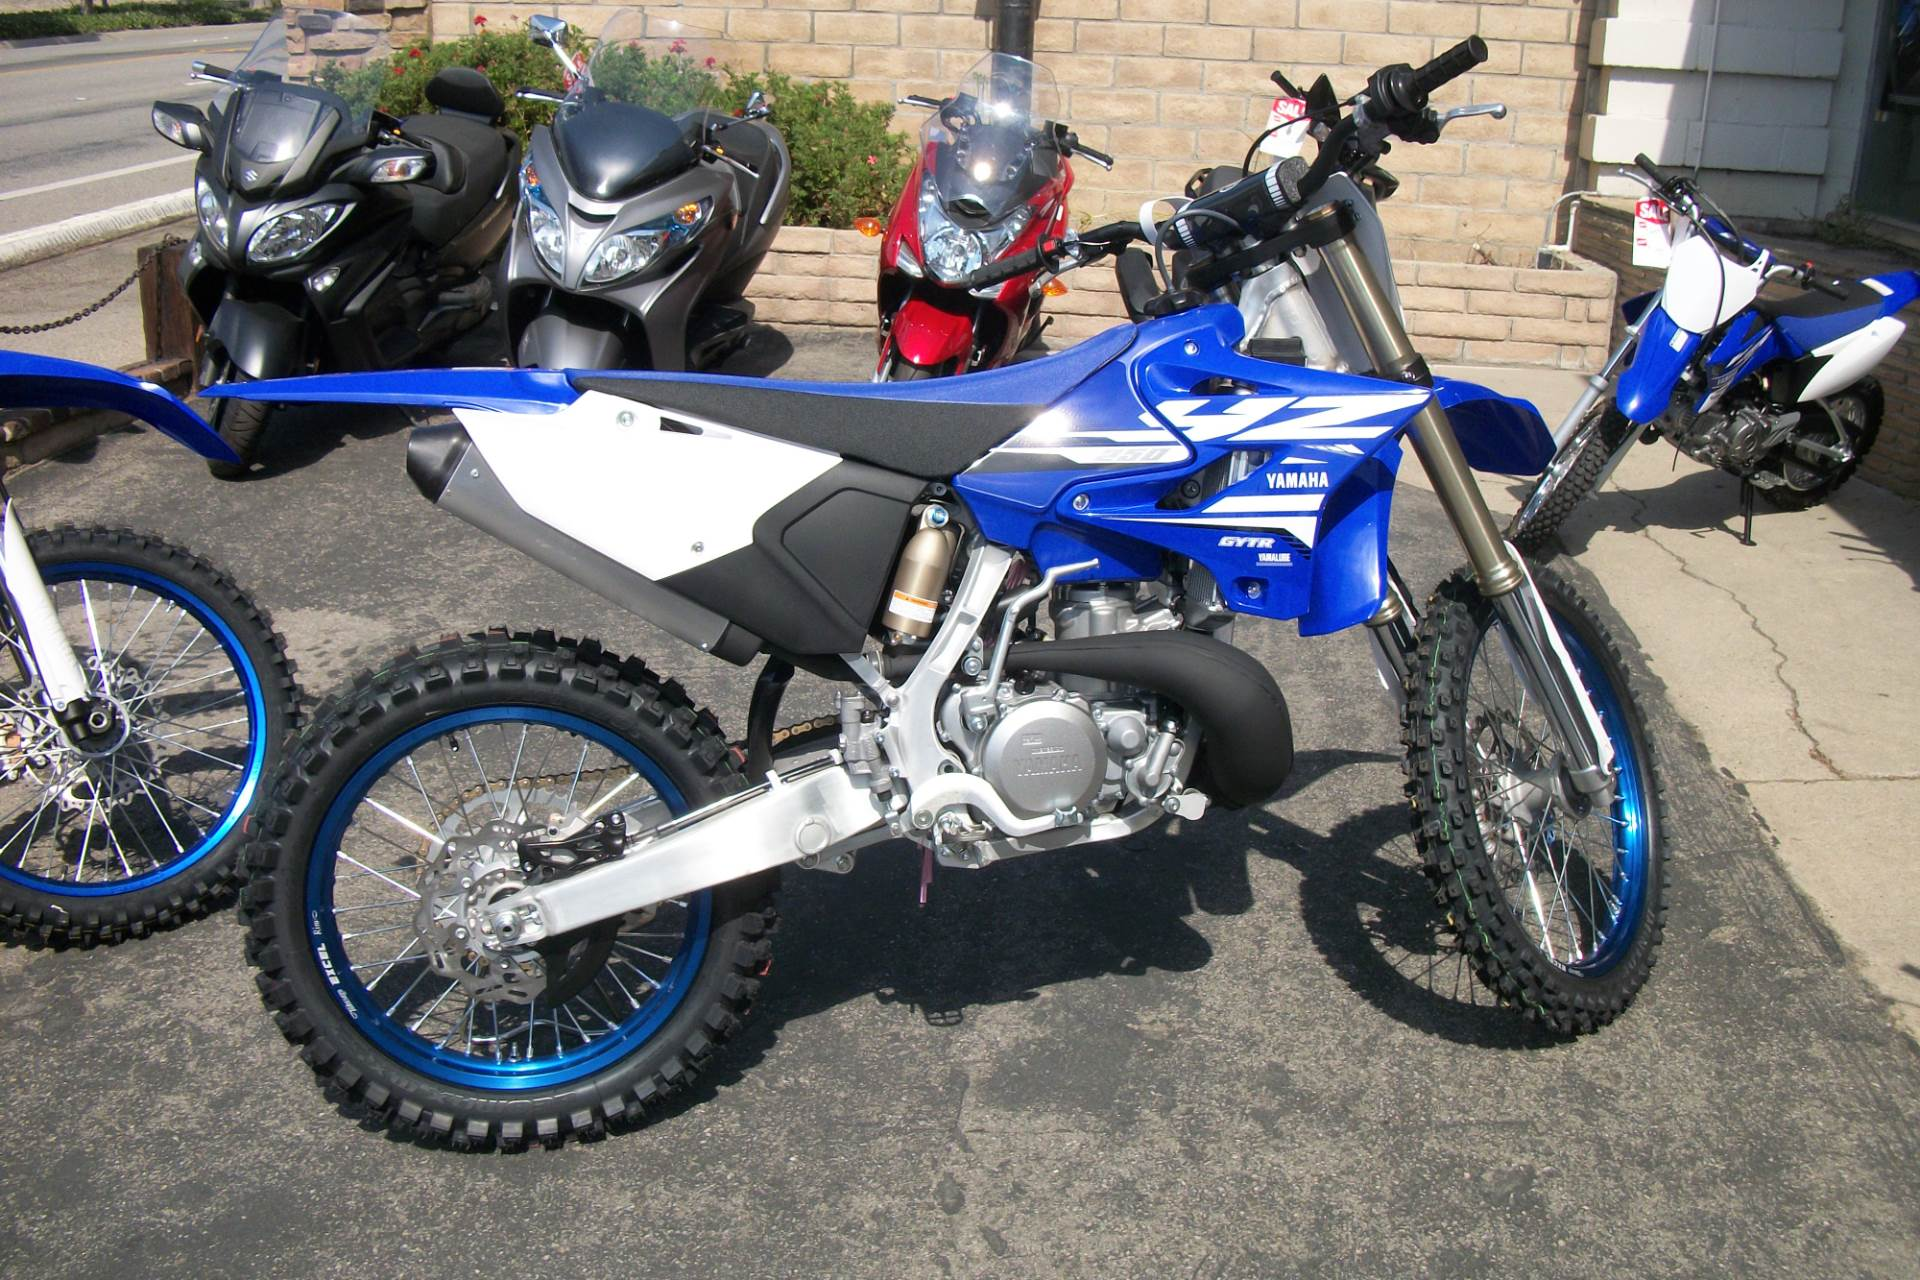 New 2018 yamaha yz250 motorcycles in simi valley ca for 2018 yamaha yz250